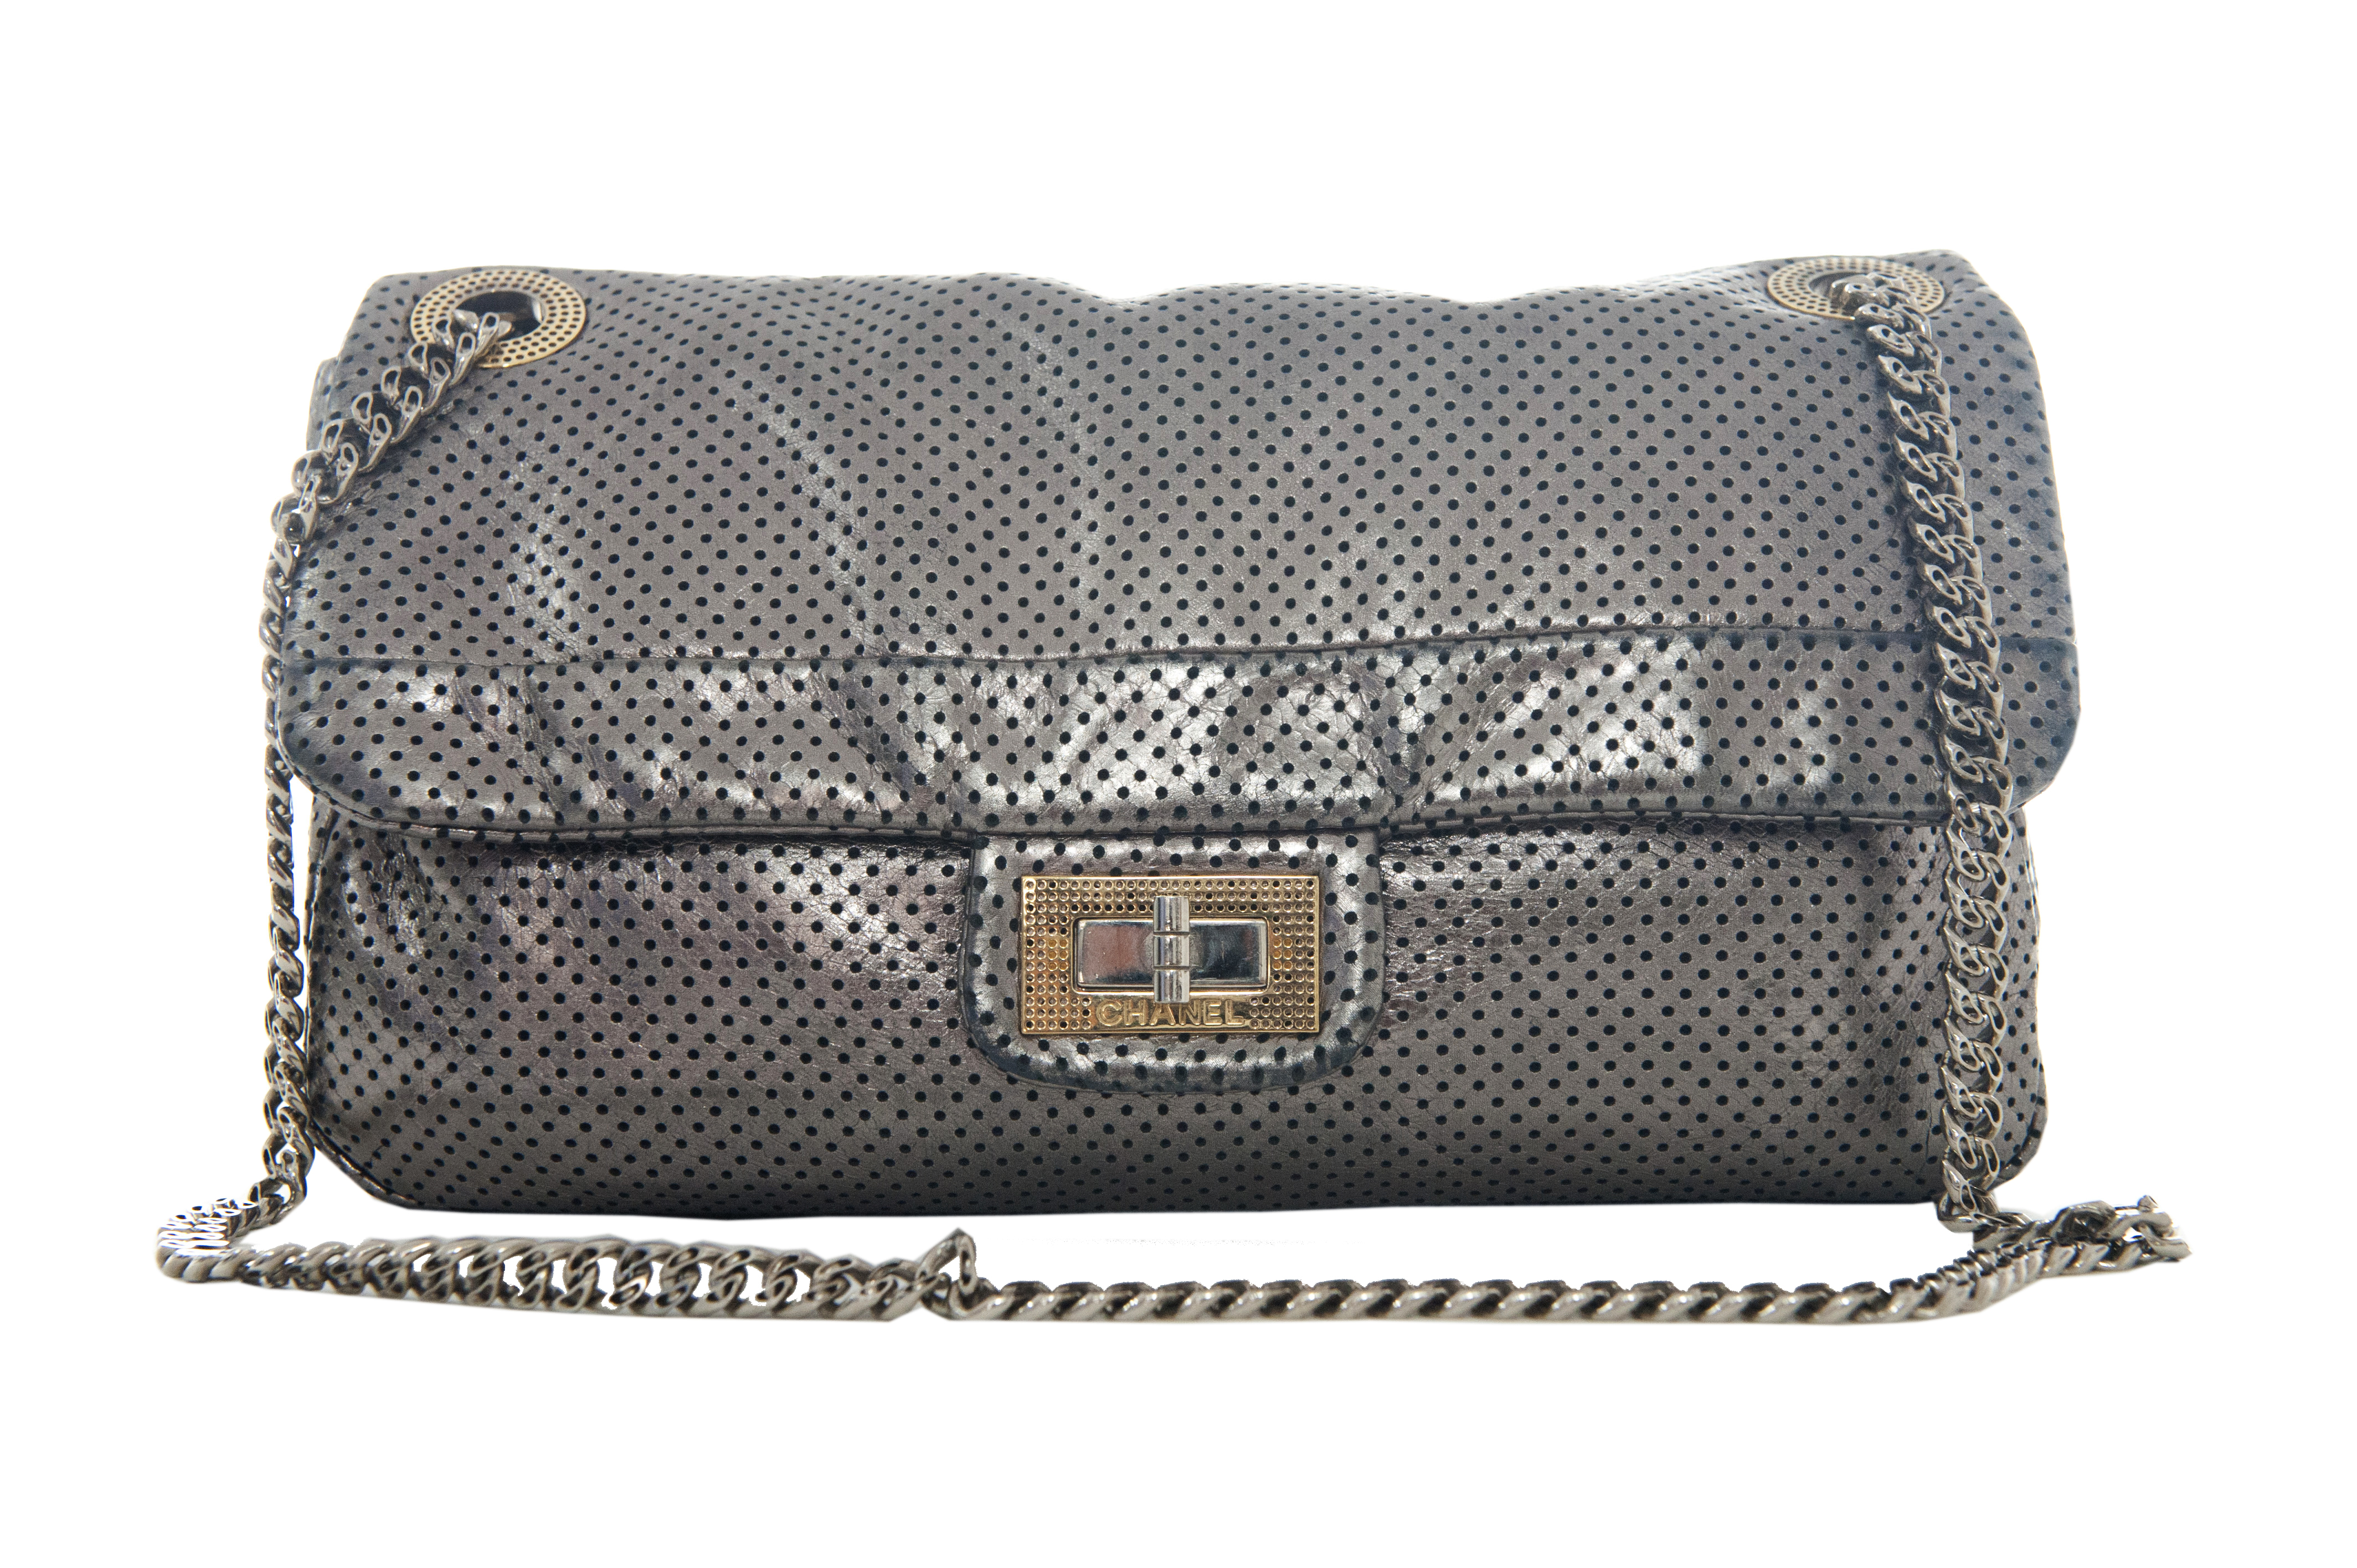 Chanel 2.55 Bag Pre Owned Perforated Metallic Silver Leather